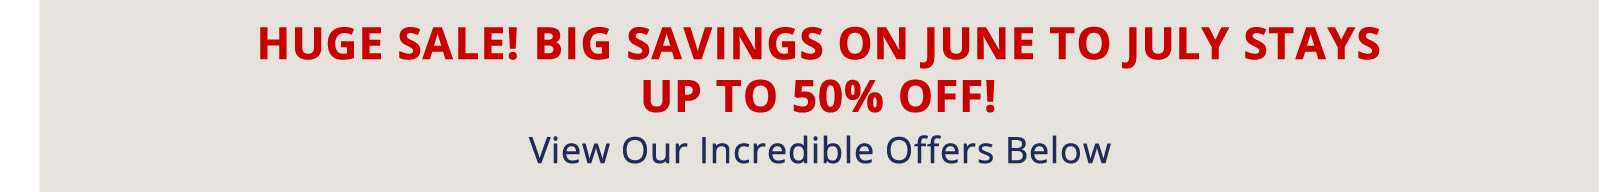 6fb9a007b1c04f Book Now for Big Savings on June to July Stays. Up to 50% off